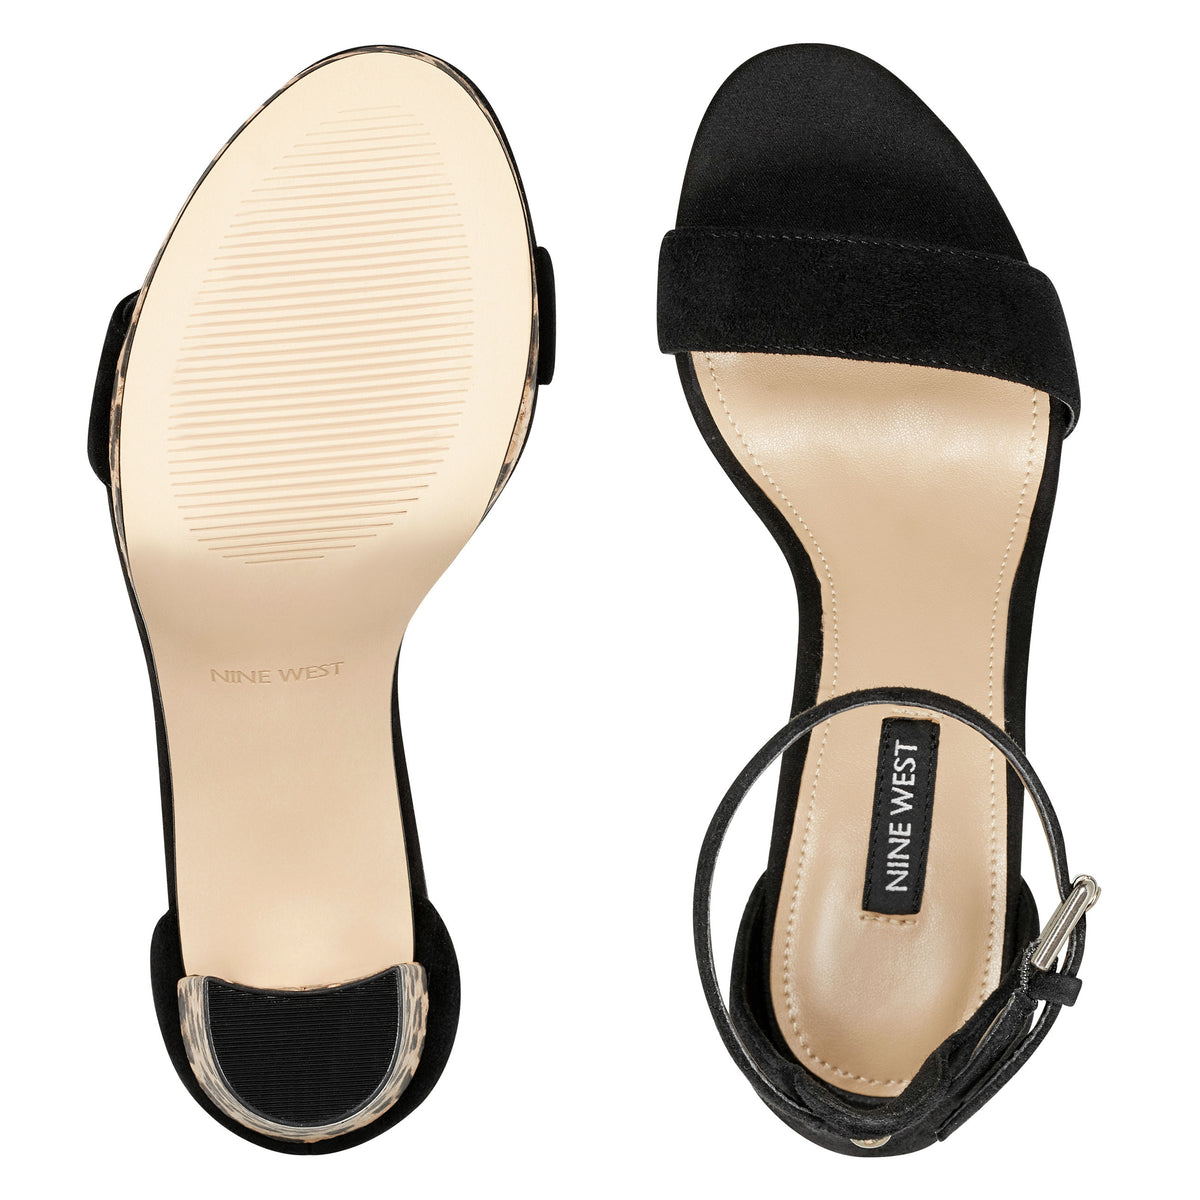 dempsey-platform-sandals-in-black-suede